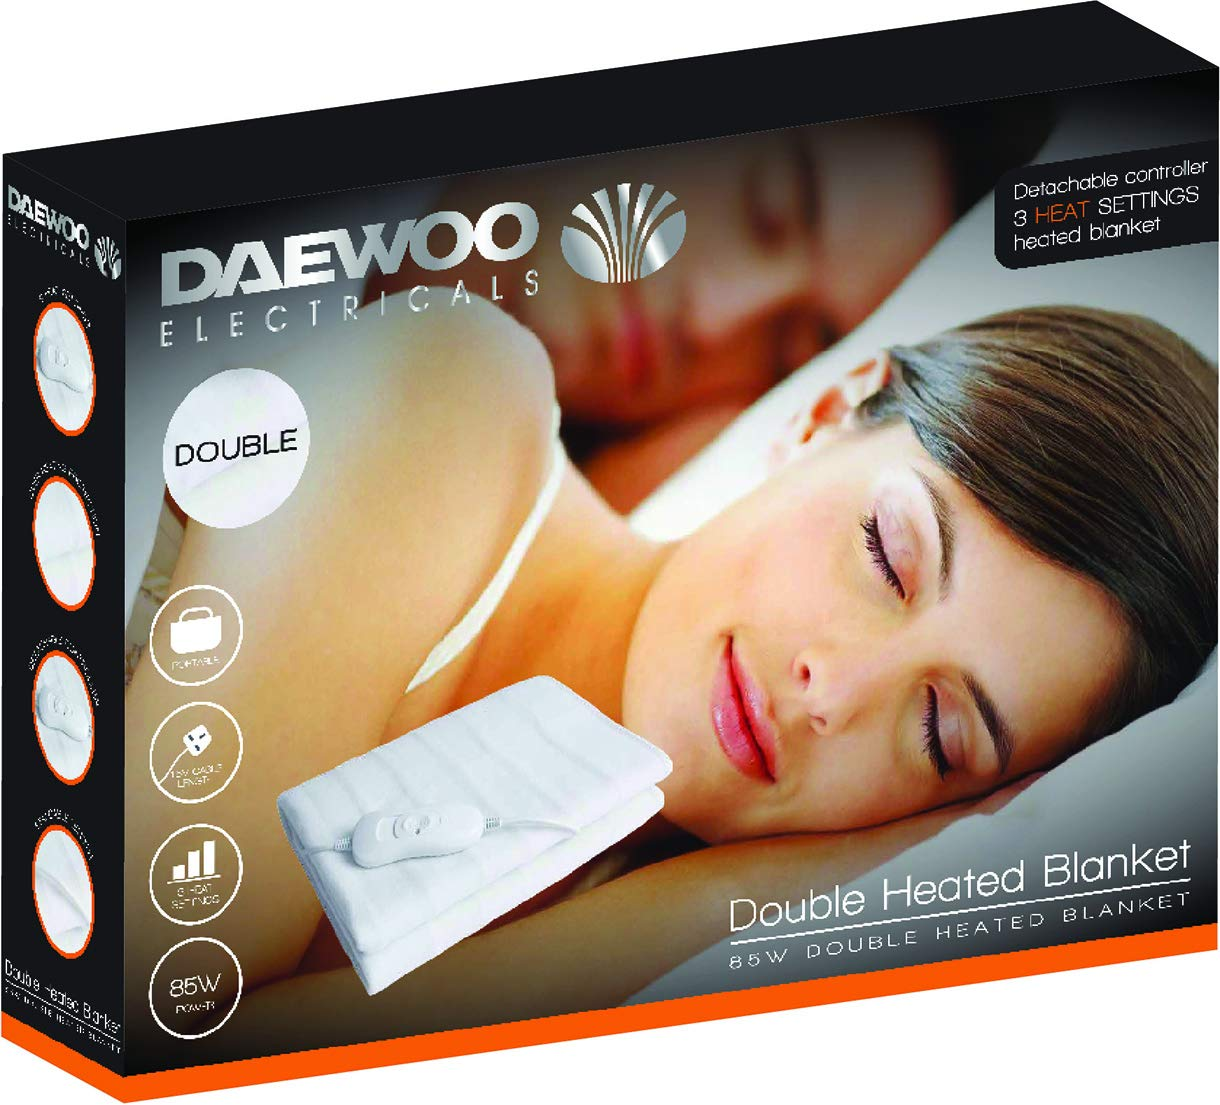 Machine Washable and Over-Heat Protection Detachable Controller Daewoo HEA1180 120W King-Size Heated Blanket with 3 Heat Settings White